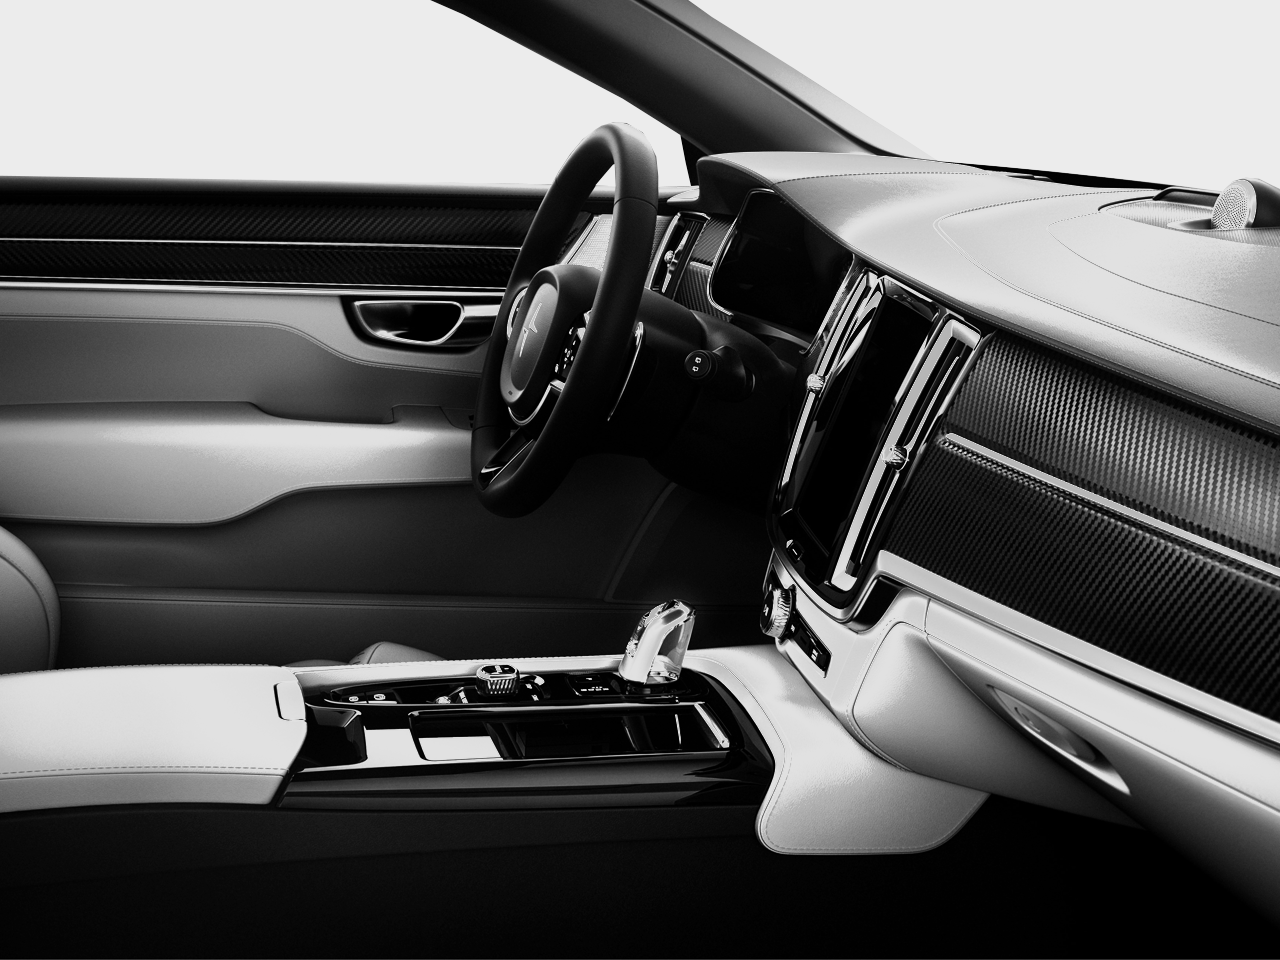 Interior view of the Polestar 1